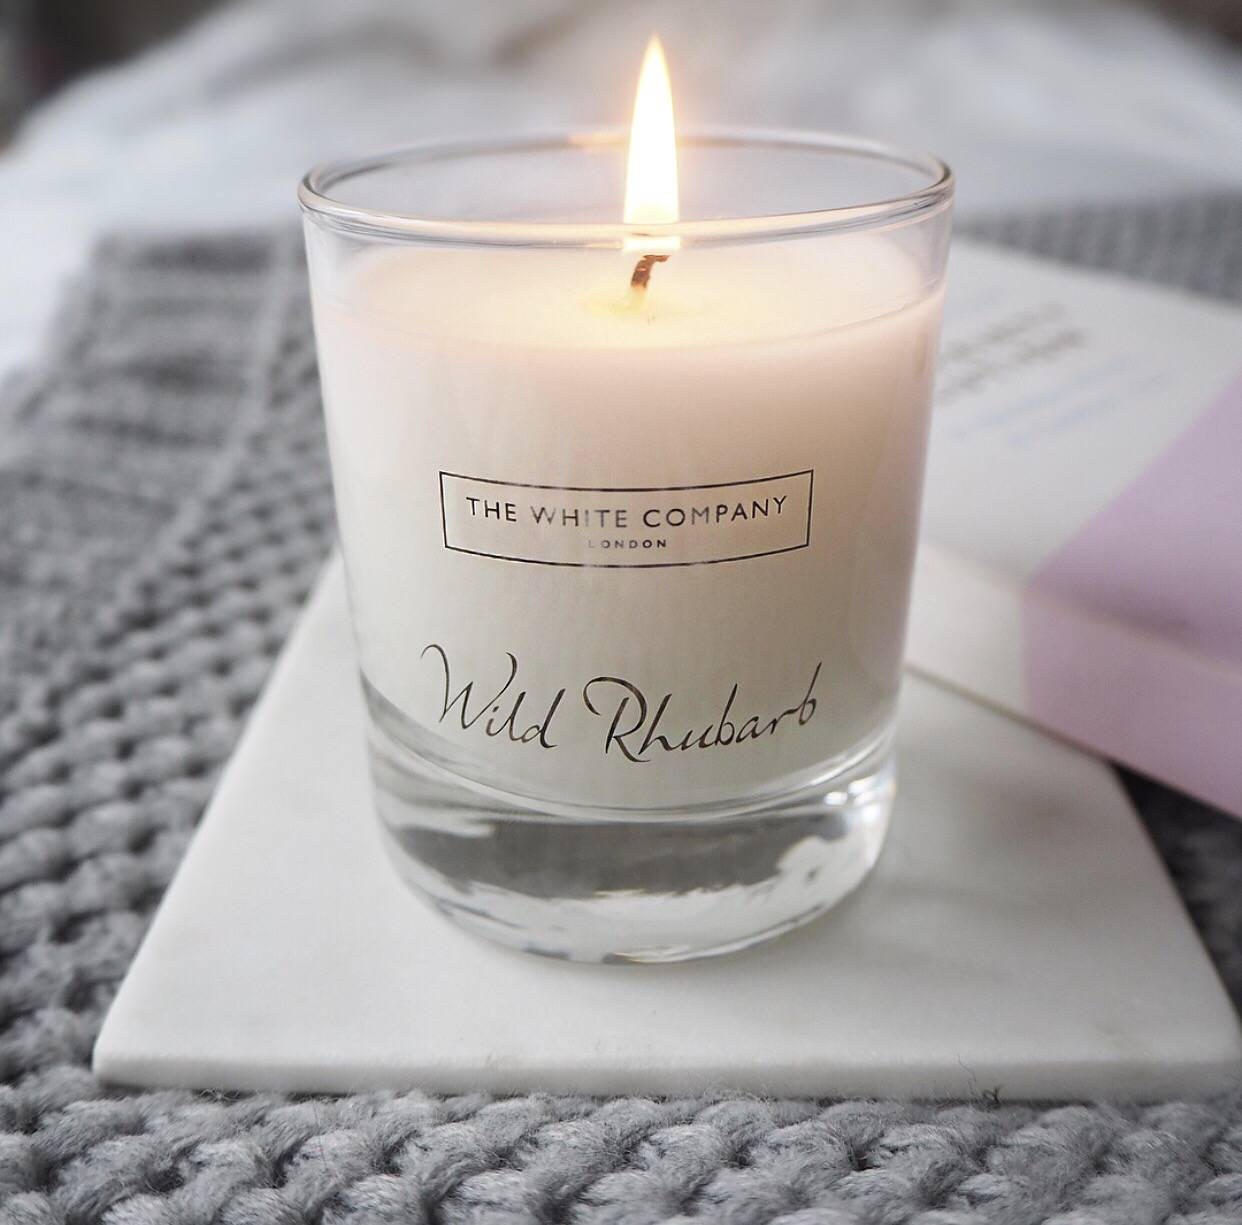 The White Company Wild Rhubarb - Tips to help with anxiety